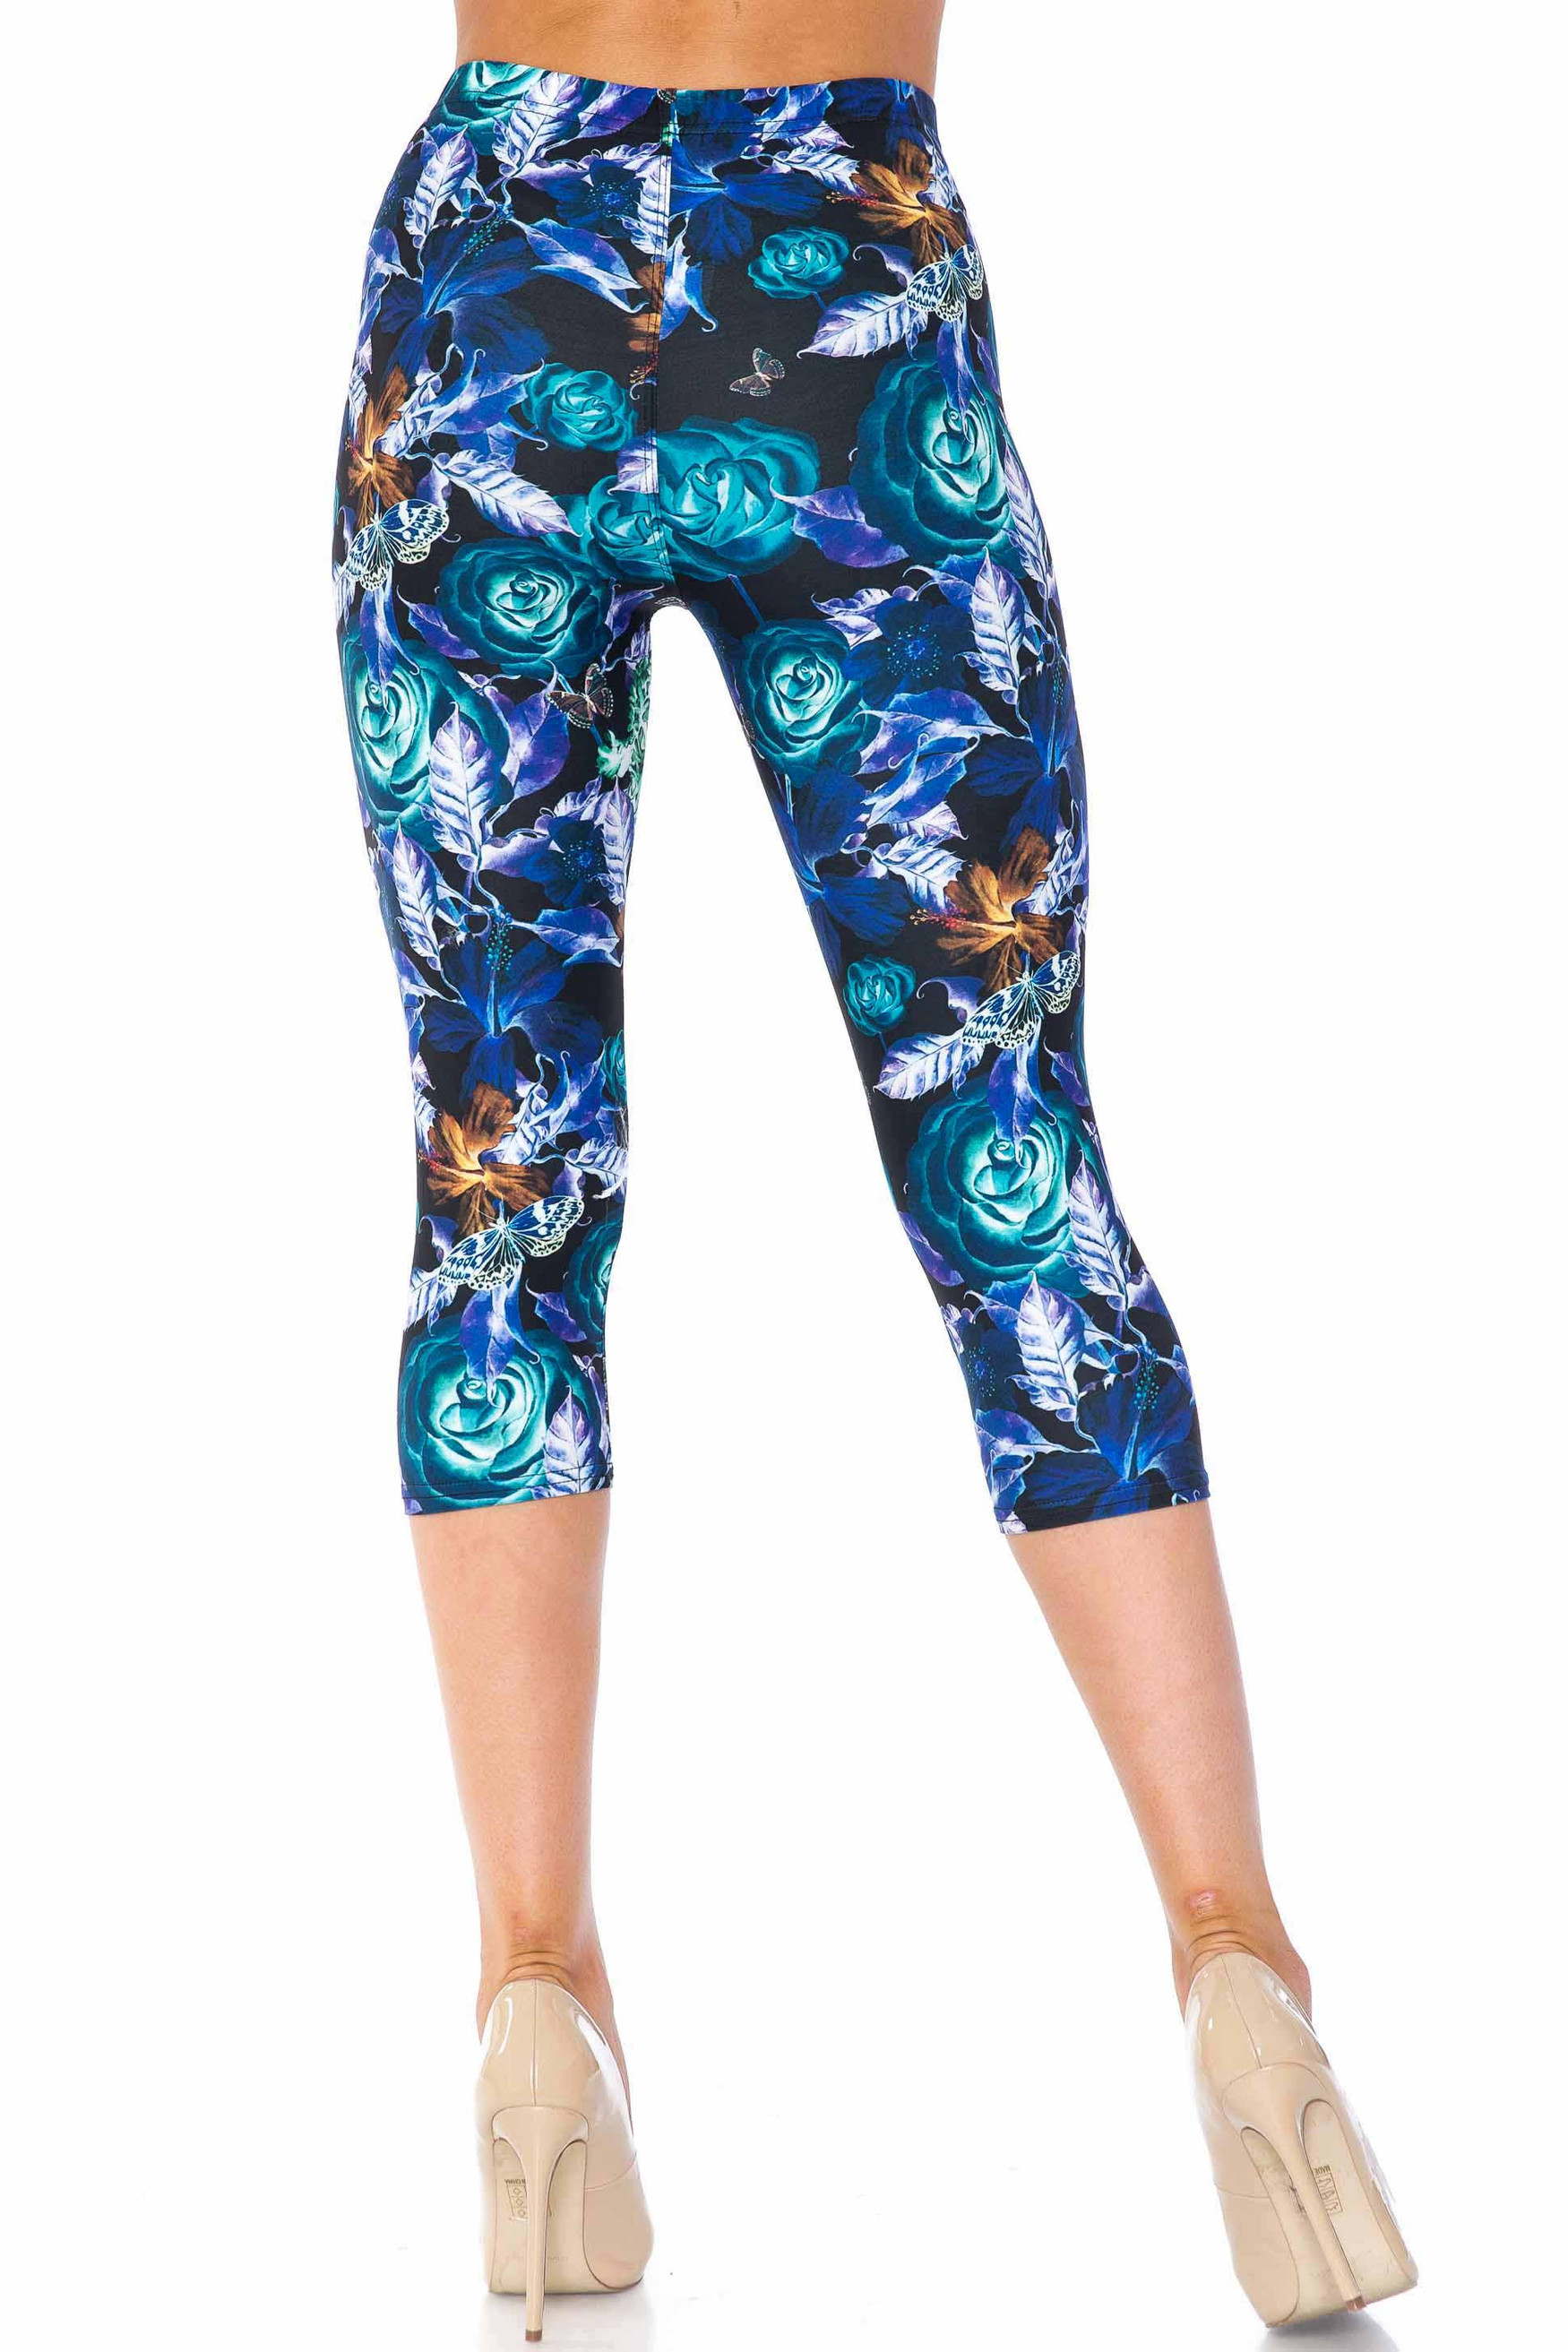 Creamy Soft Electric Blue Floral Butterfly Capris - USA Fashion™